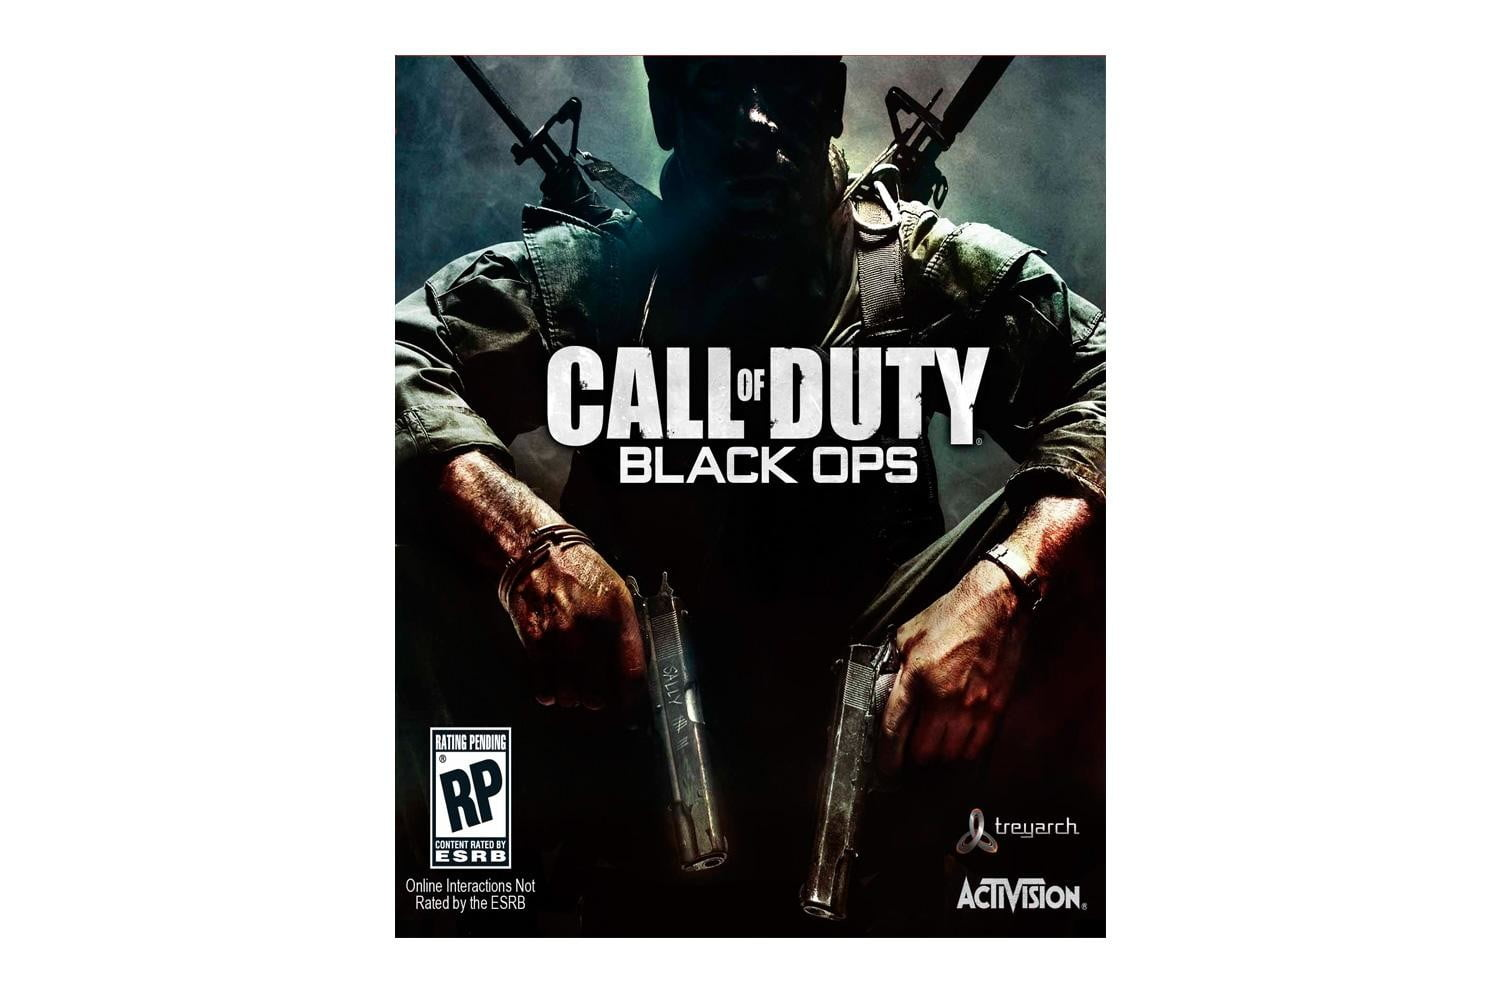 Call-of-Duty-Black-Ops-cover-art